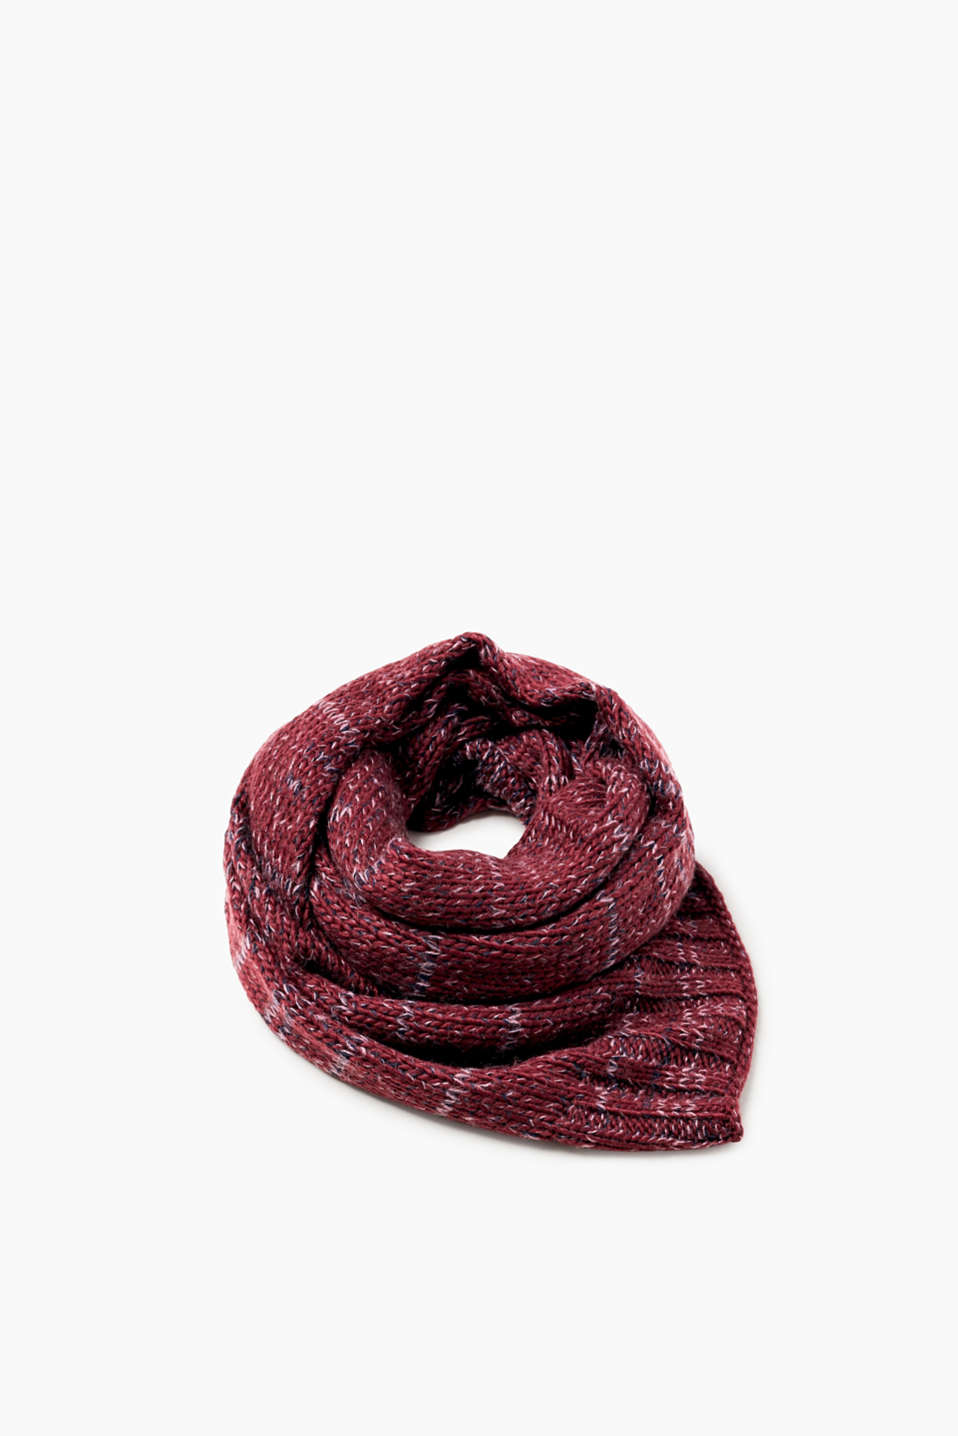 This extra wide, sensationally snug scarf is made of comfy, chunky melange yarn.